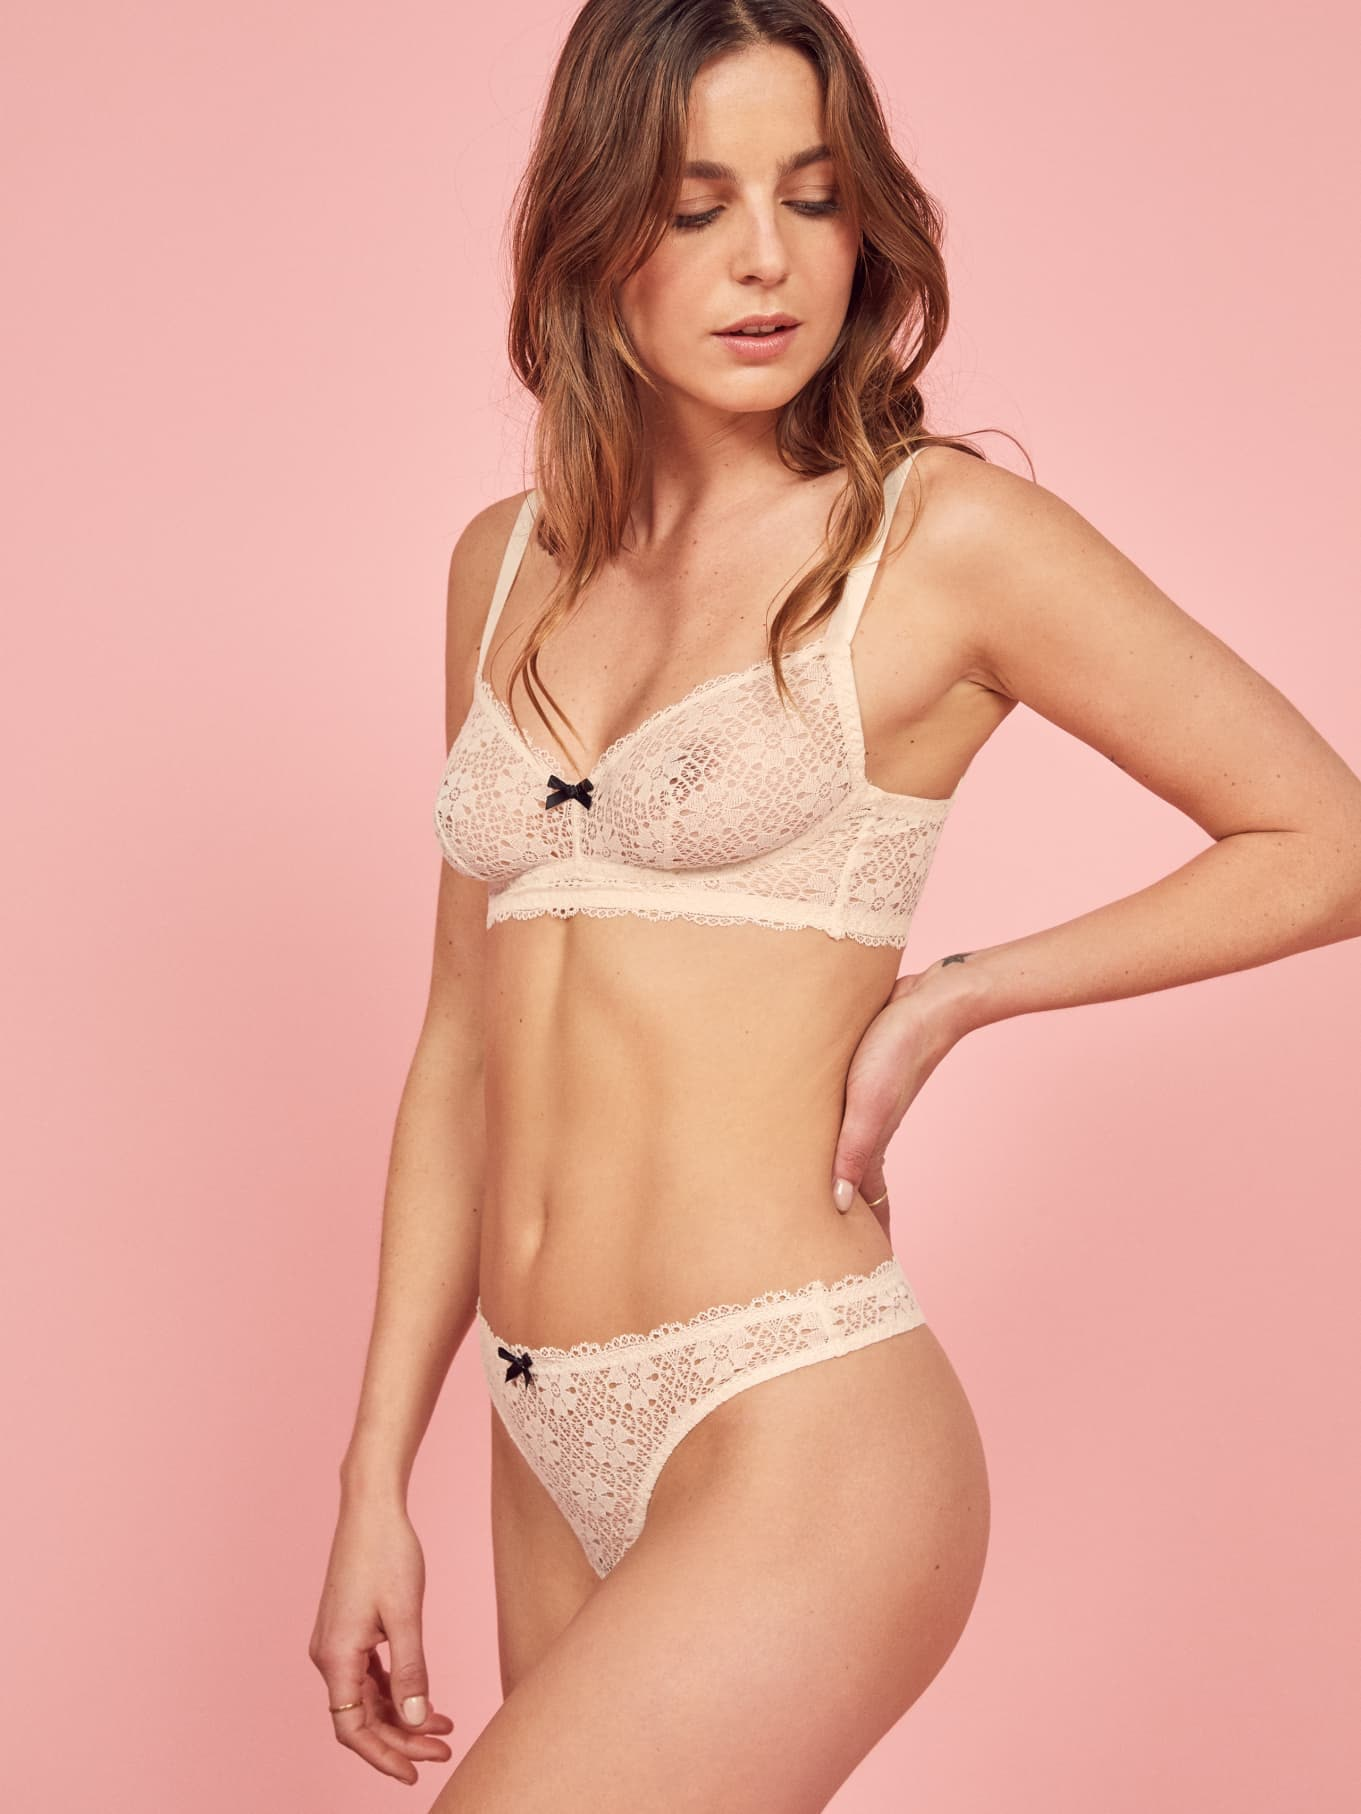 12b89cb5bfe79 Reformation's Cosabella Collection Features Lingerie That Deserves To Be  Shown Off